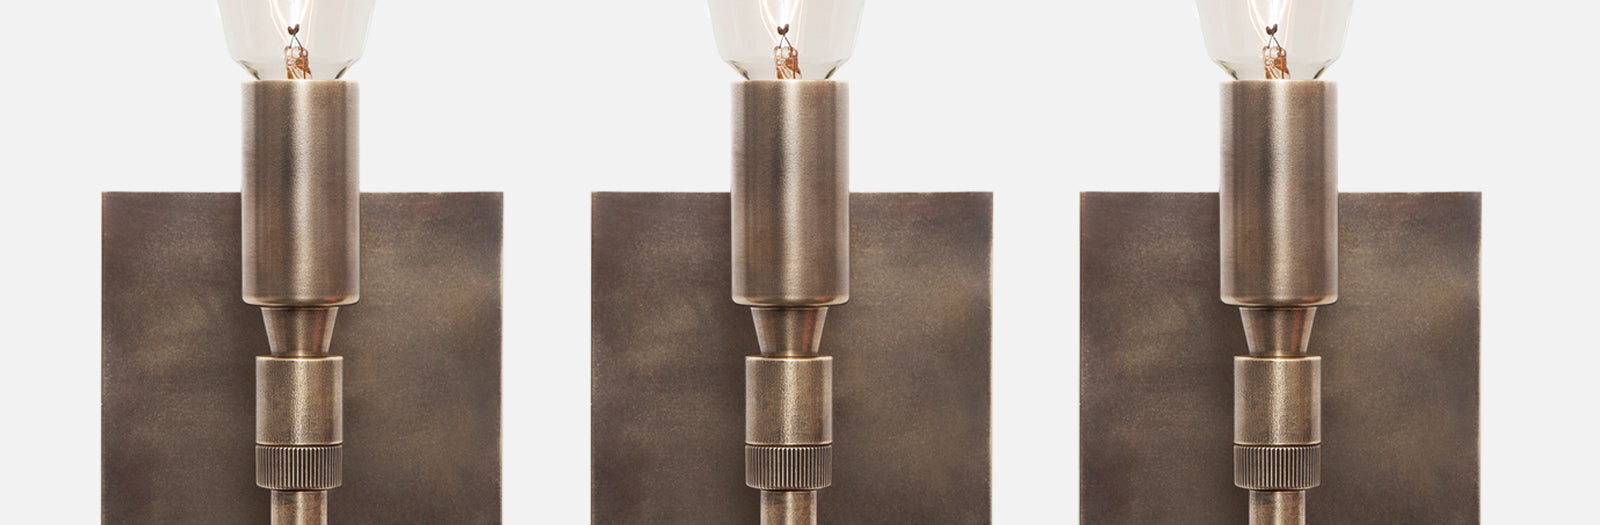 Wall Sconces - Hardwired